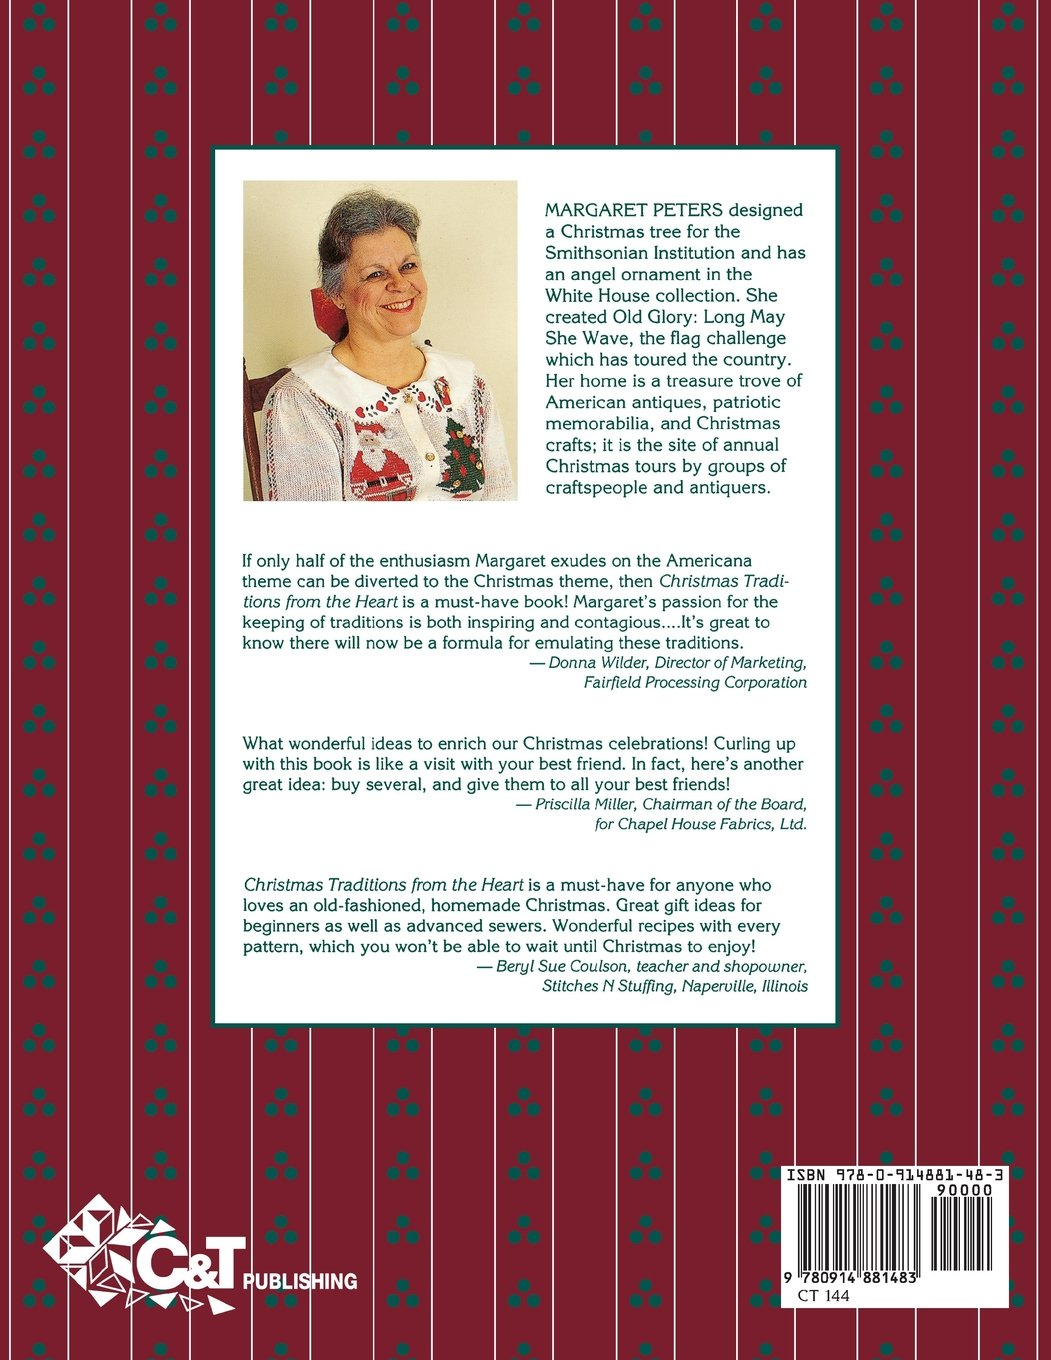 Christmas Traditions from the Heart, Vol. 1: Margaret Peters ...